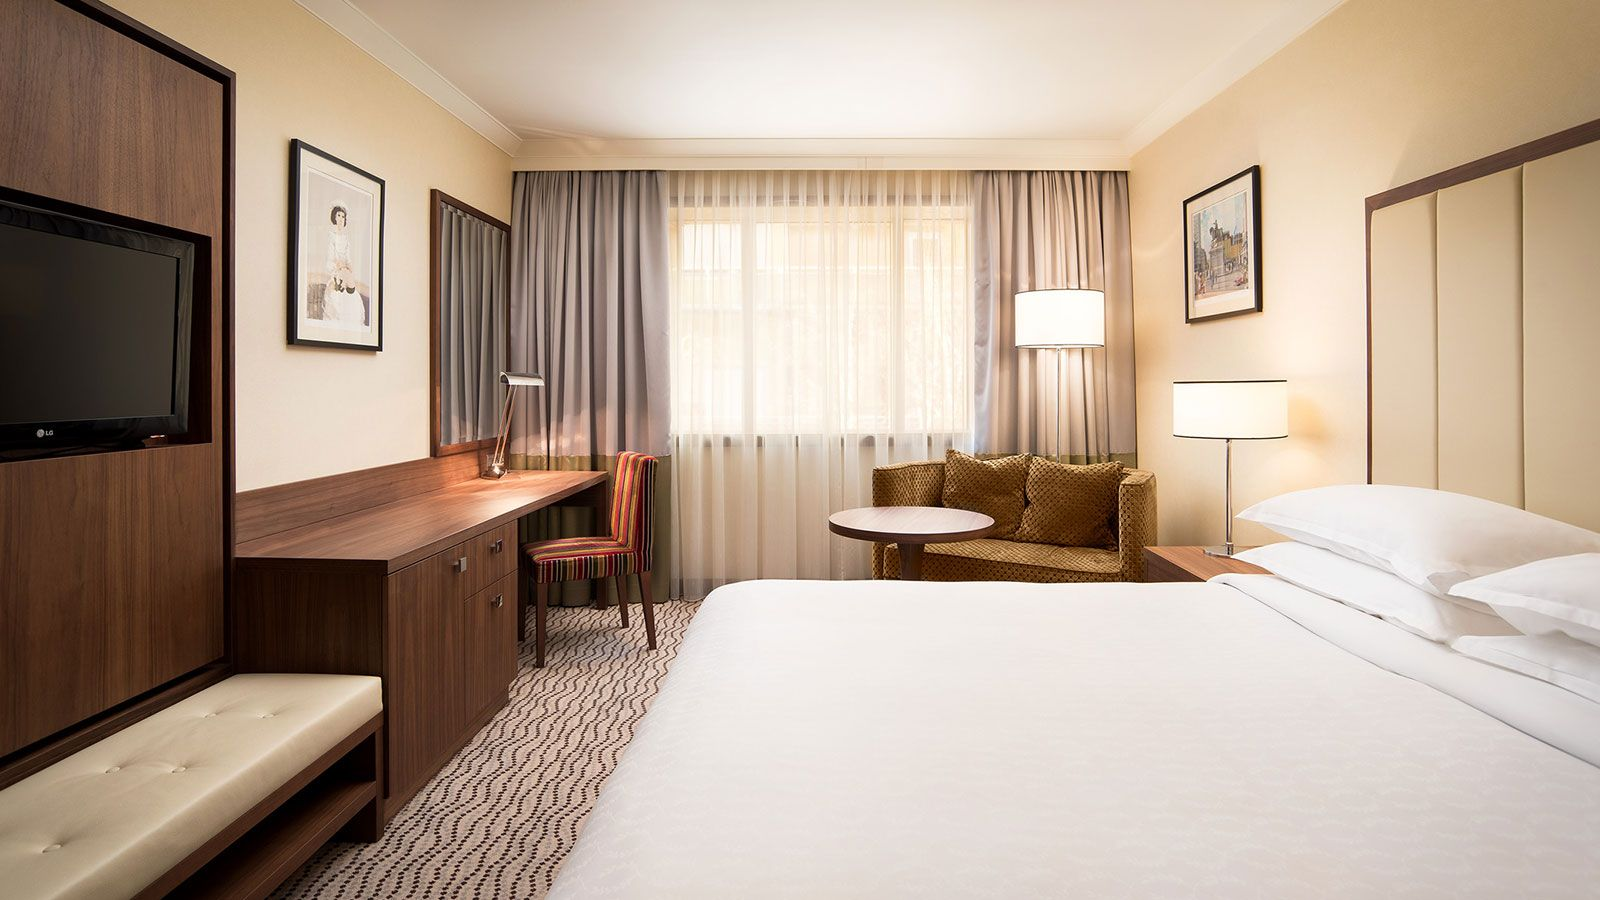 Discover our Classic Suite in 360